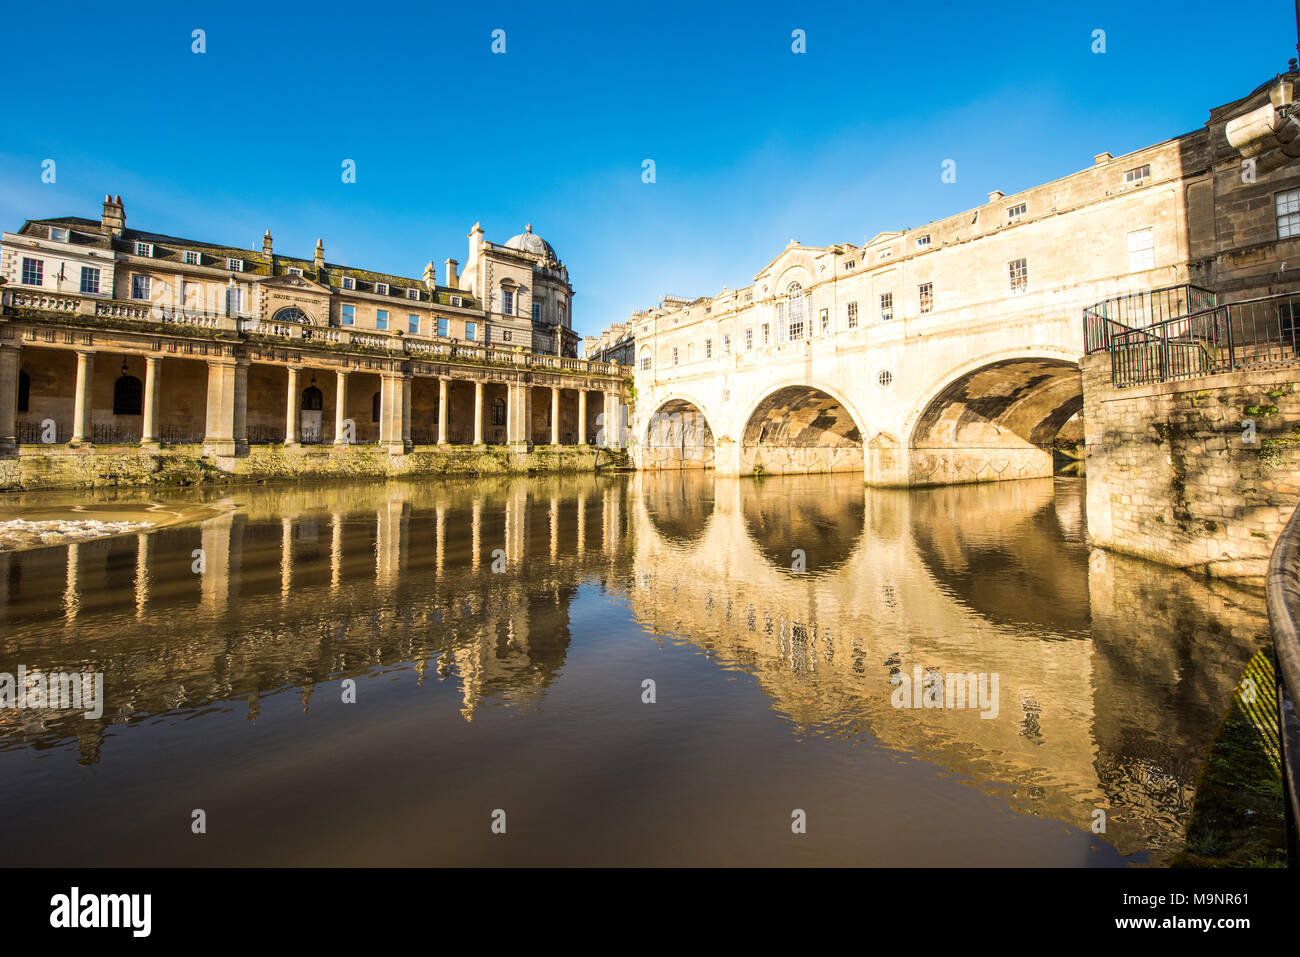 Historic Pulteney Bridge's three arches and the Grand Parade columns reflected in the  shimmering River Avon in Bath with a beautiful clear blue sky - Stock Image